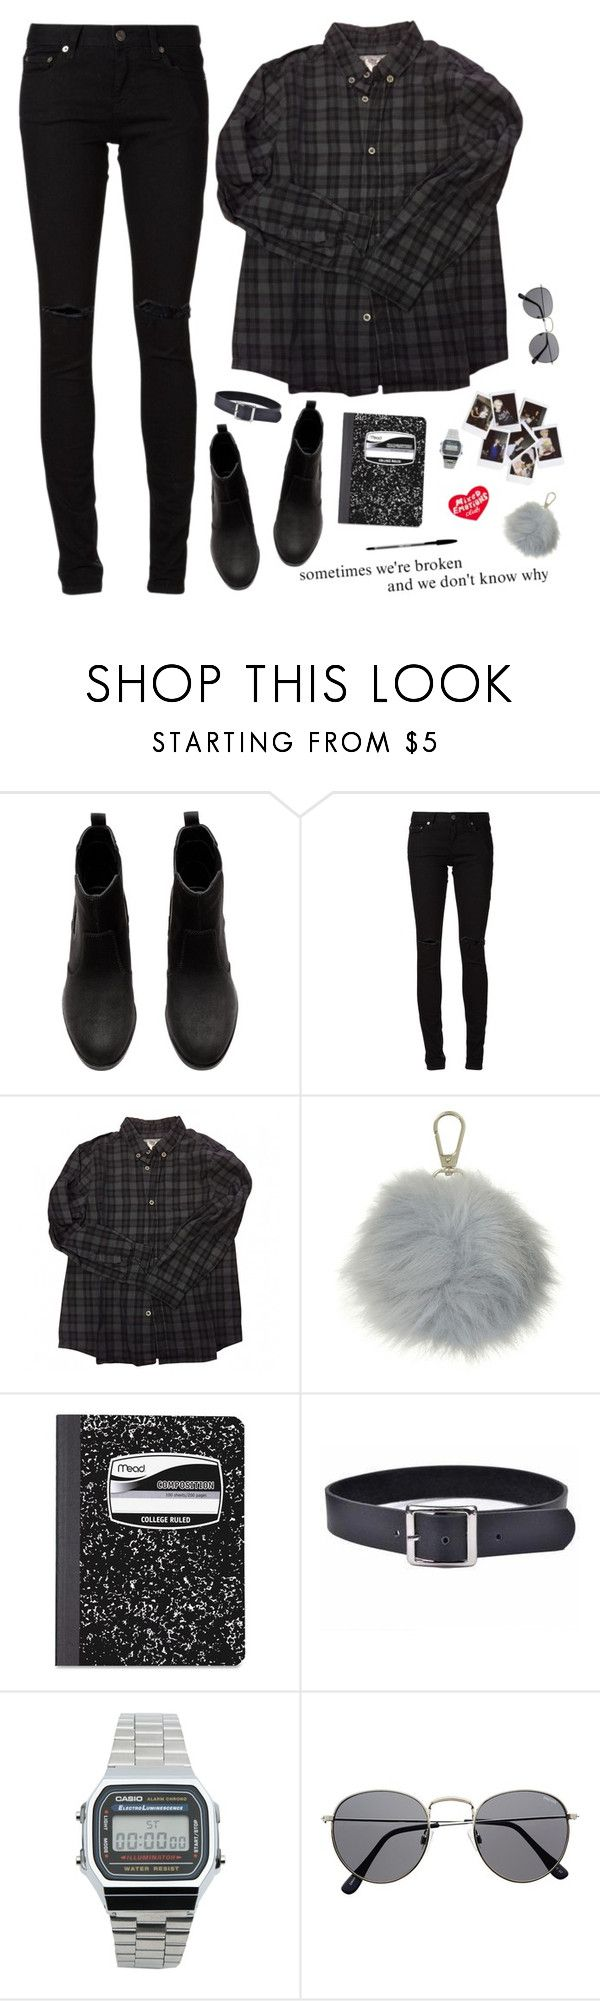 """Sometimes We're Broken, And We Don't Know Why"" by shoftie ❤ liked on Polyvore featuring Nasty Gal, H&M, Yves Saint Laurent, Bonpoint, Whistles, Mead, Trend Cool, Casio and Tuesday Bassen"